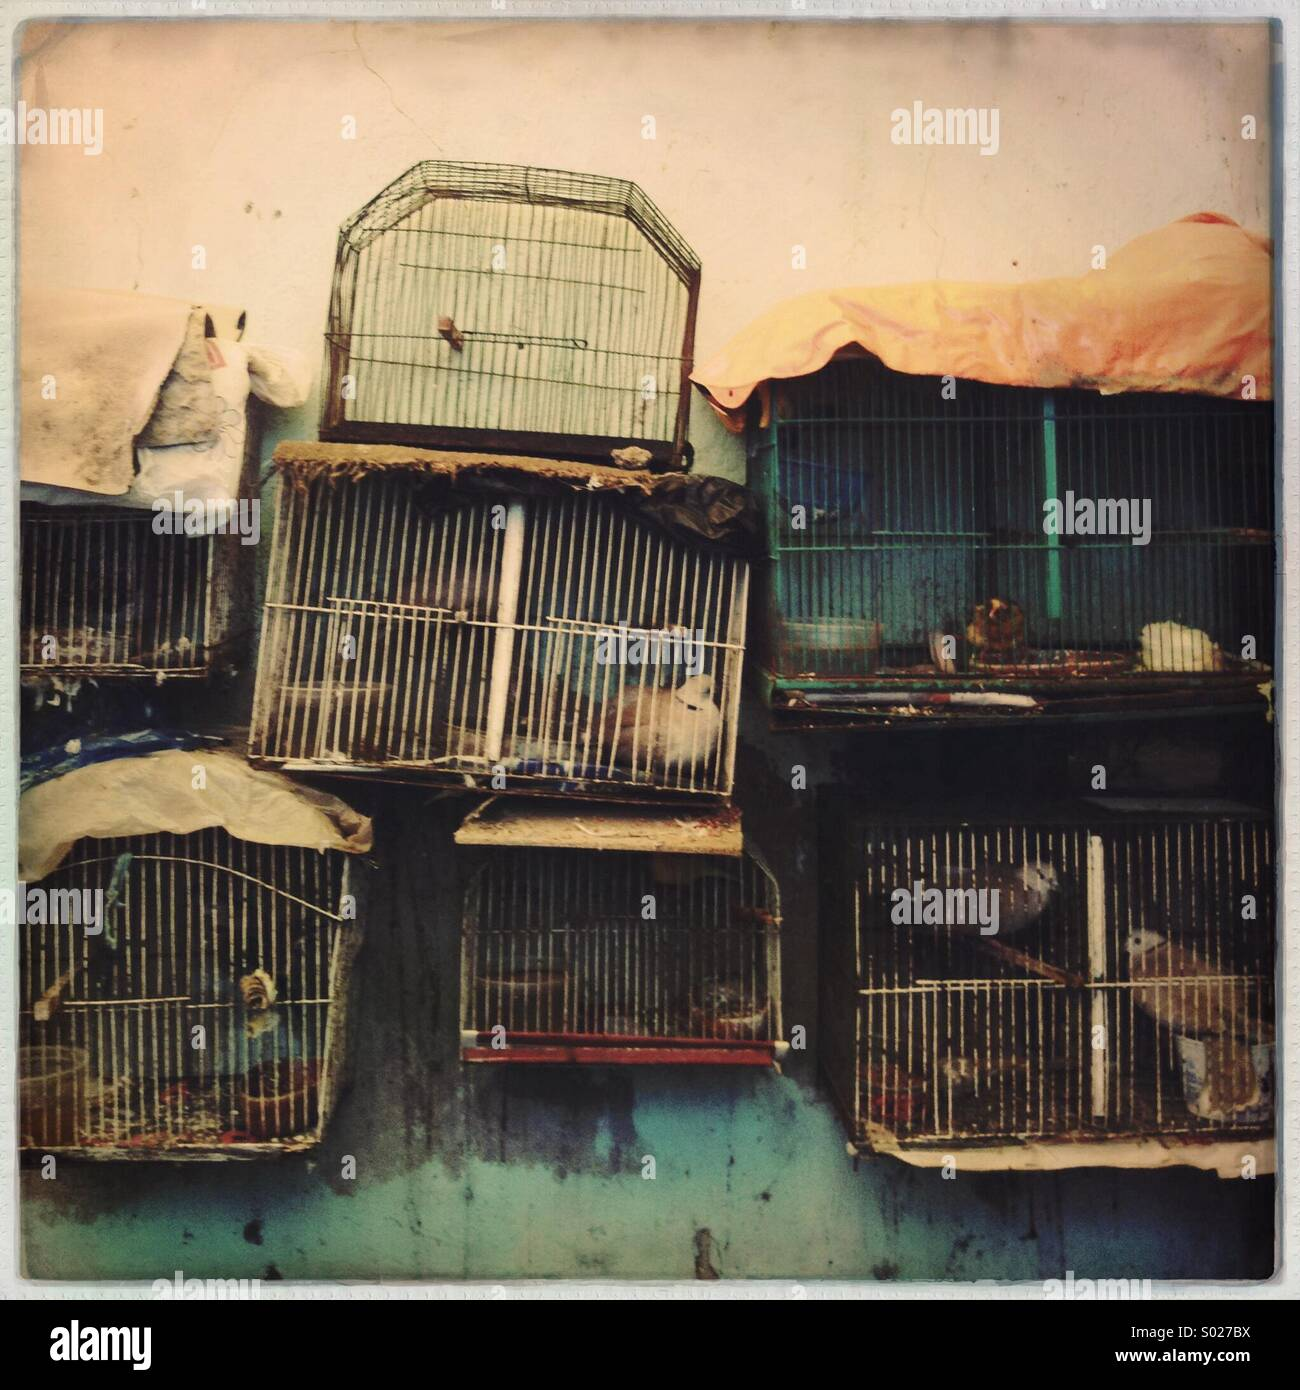 love the birds...in cage. - Stock Image